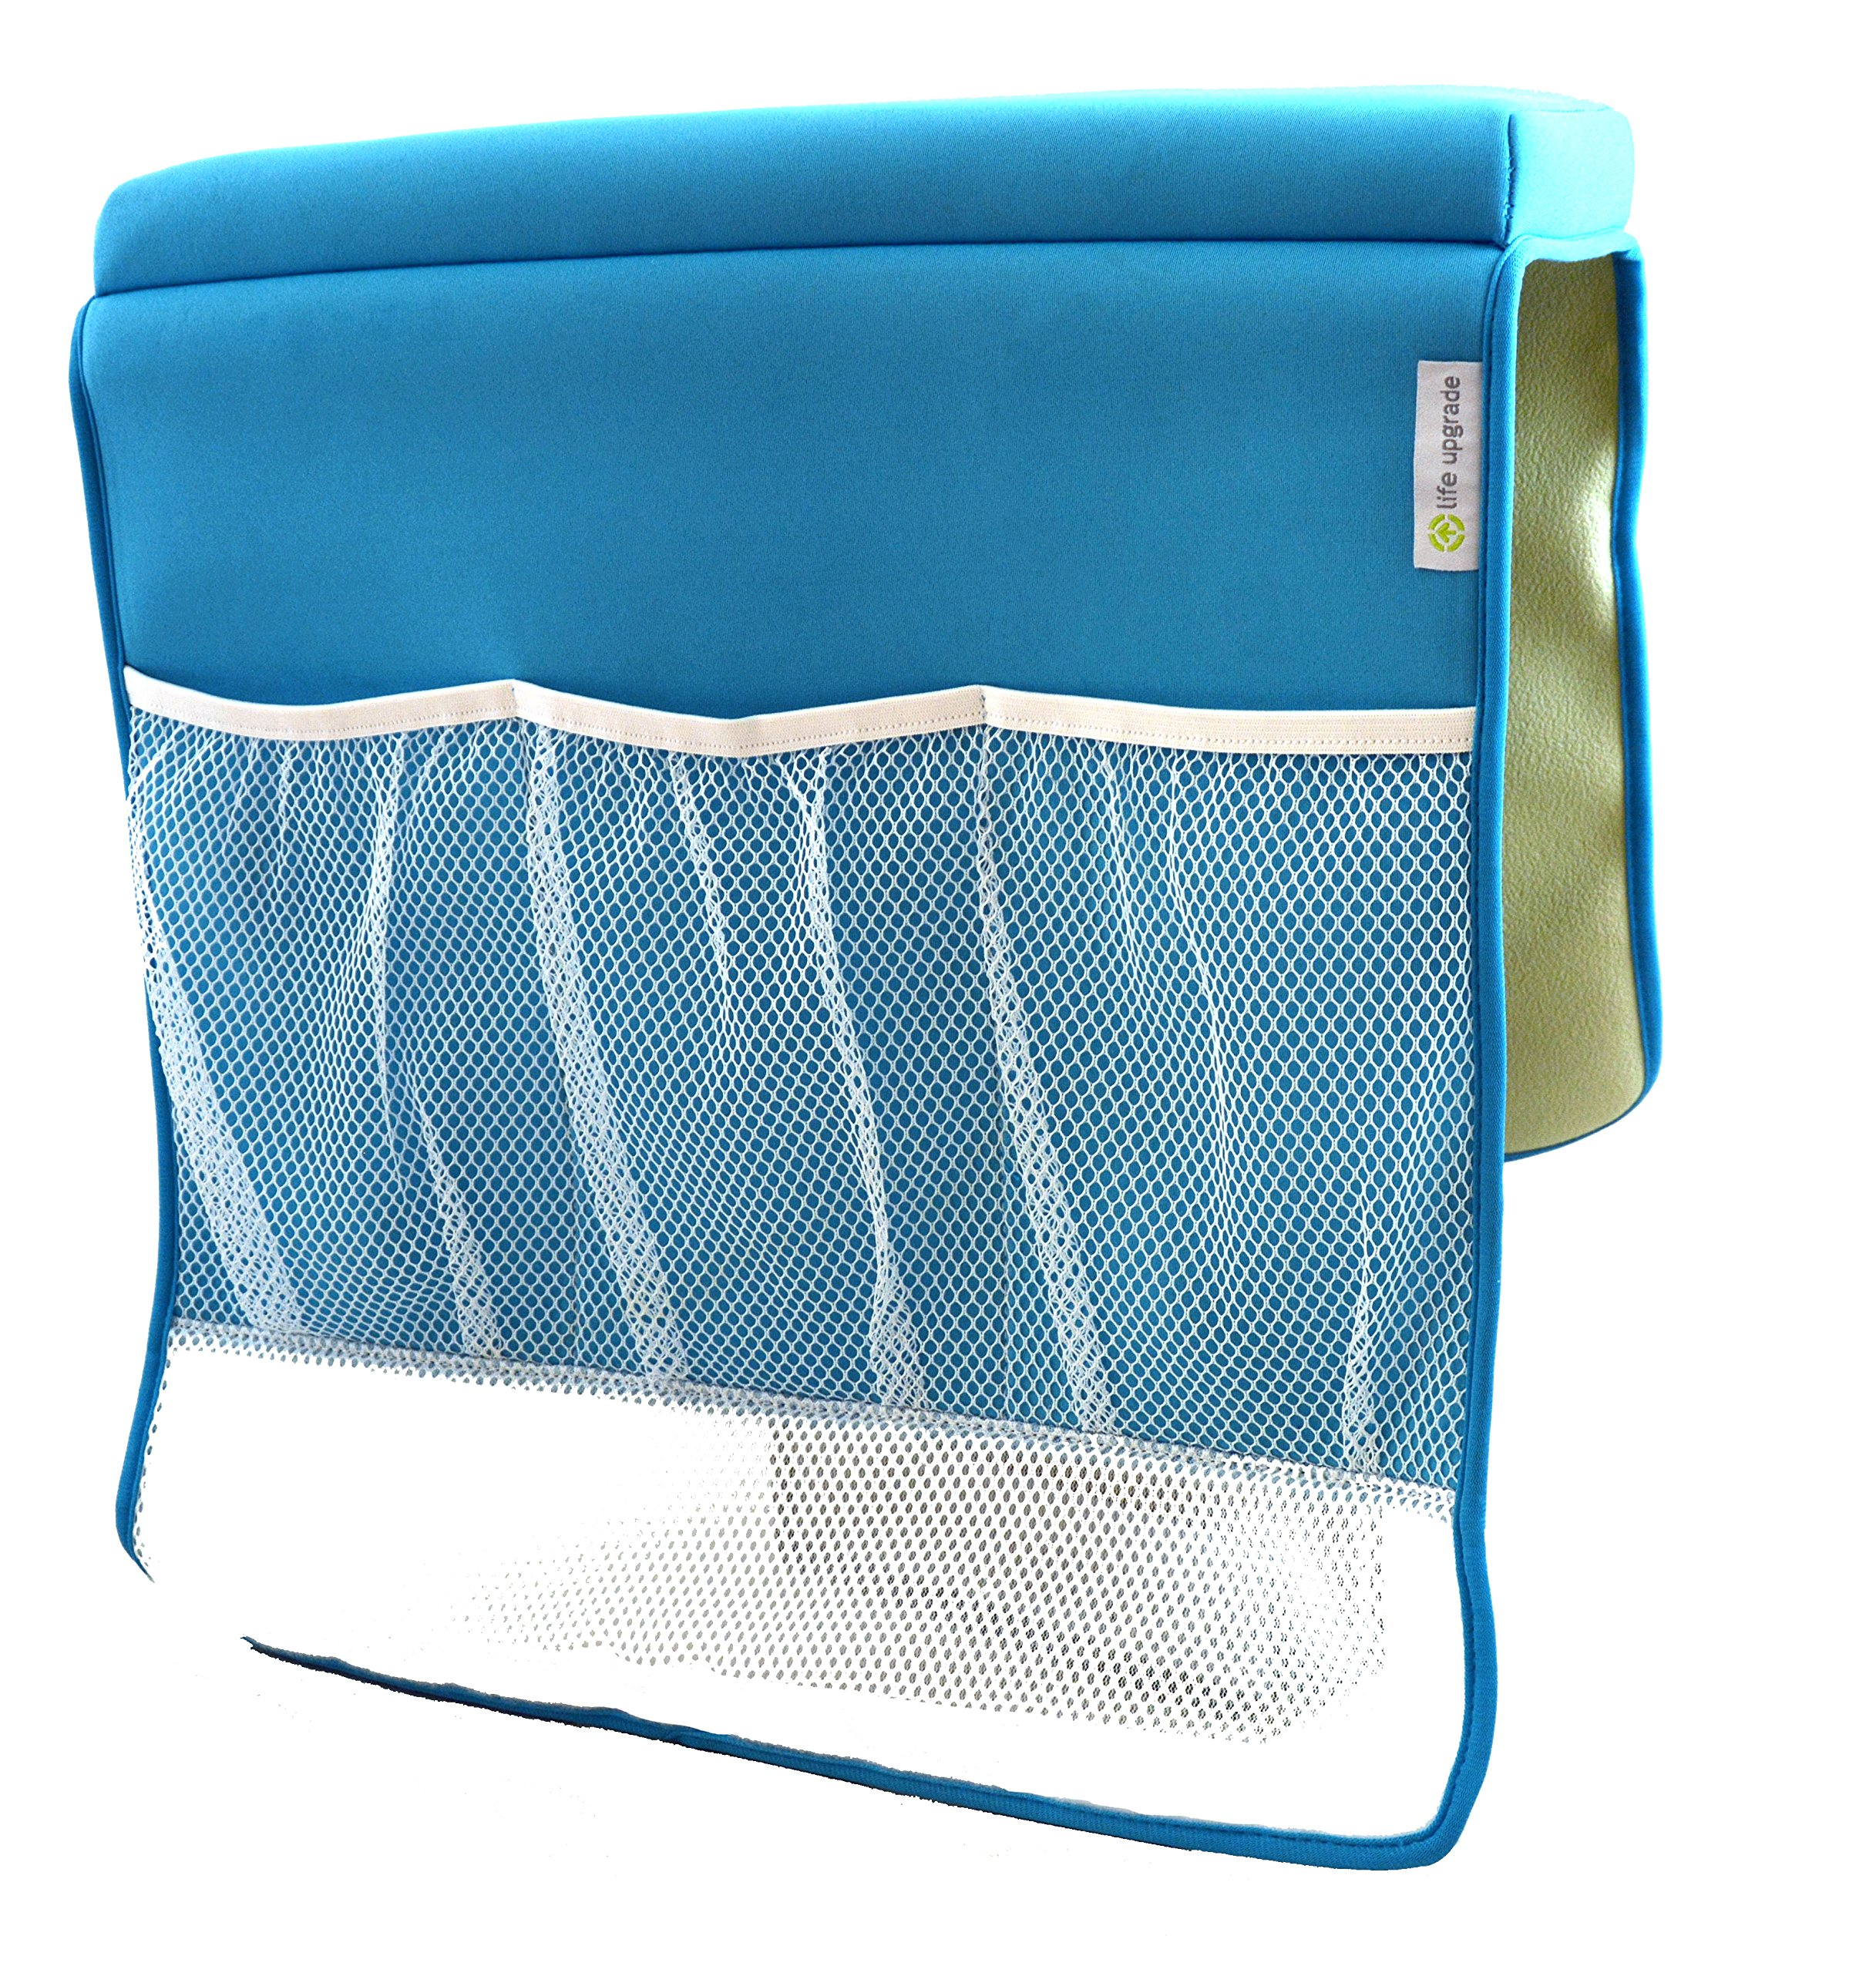 Life Upgrade Bath Kneeler in Blue - Padded Knee and Elbow Baby Bath Tub Cushion Mat with Pockets by Life Upgrade (Image #4)